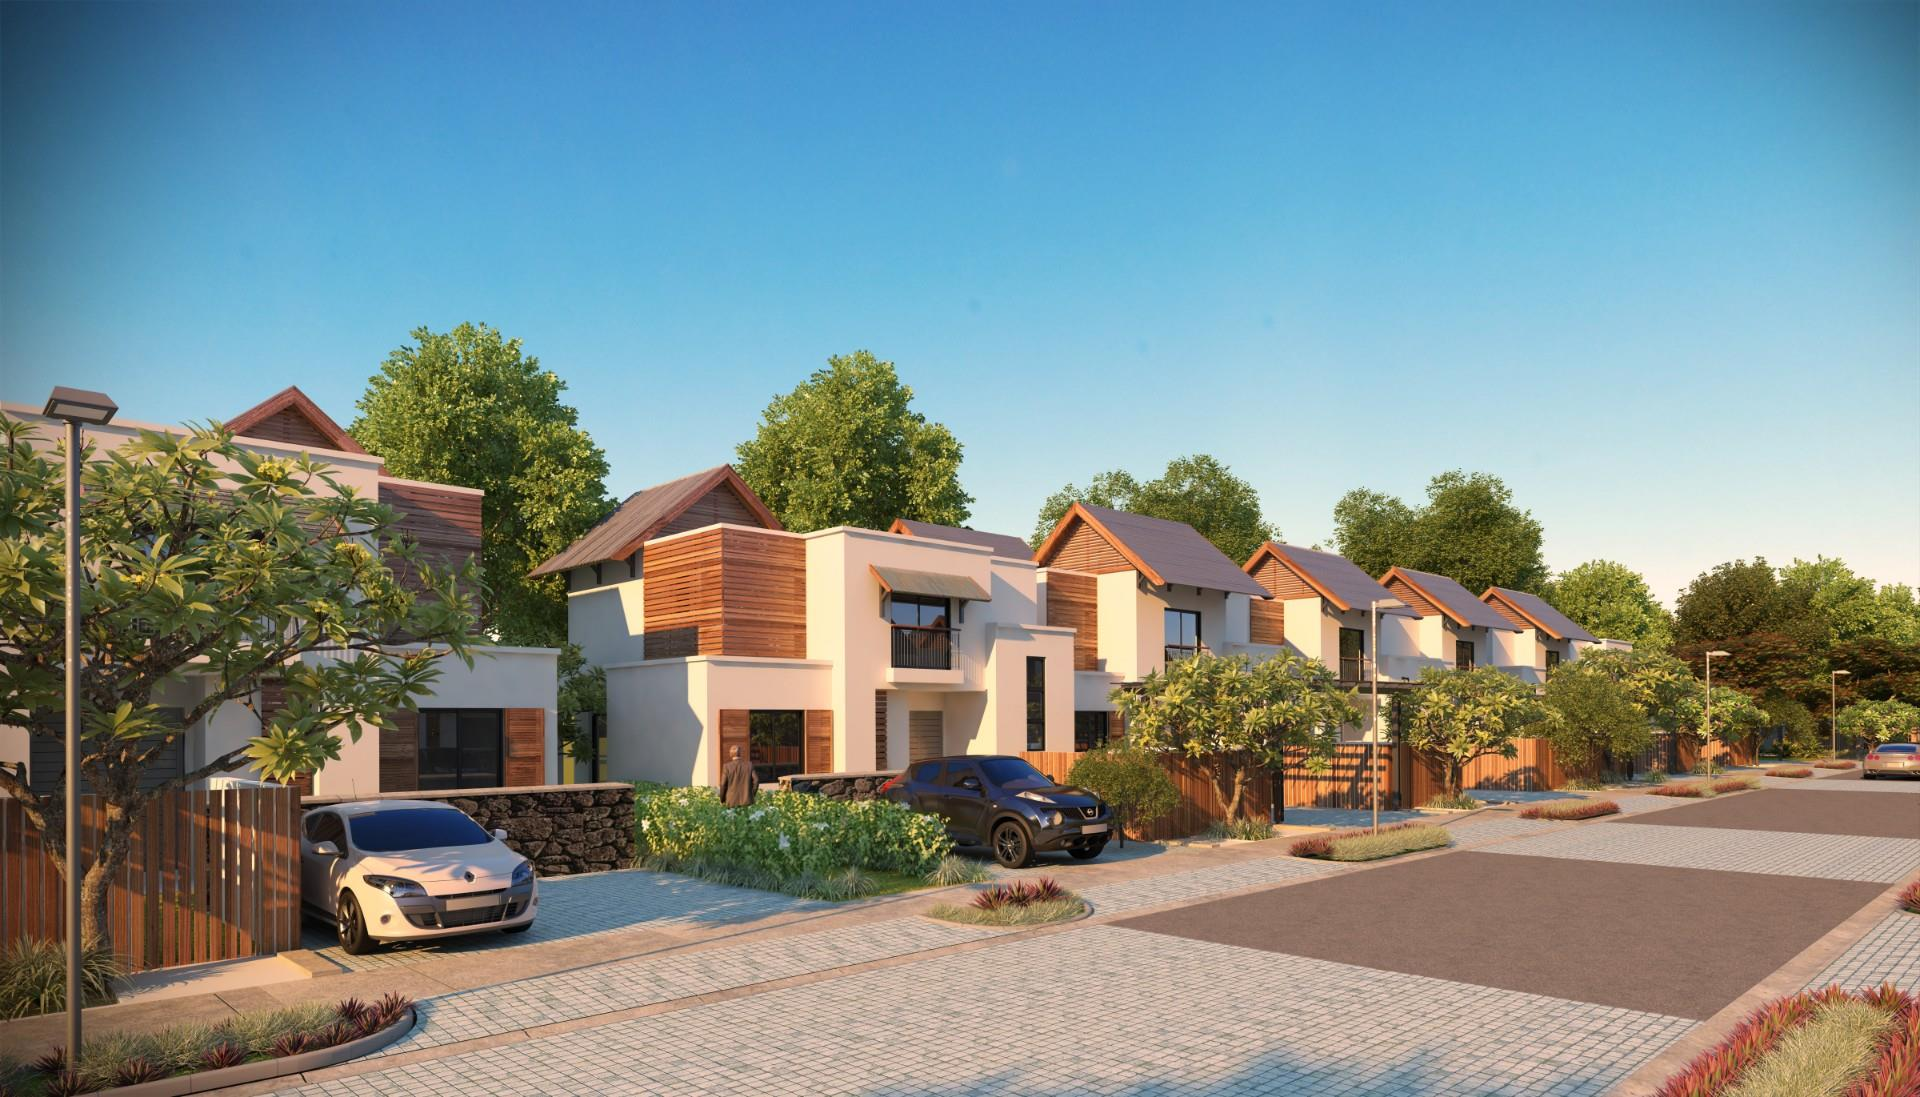 3 Bedroom Townhouse For Sale in Plaine Magnien